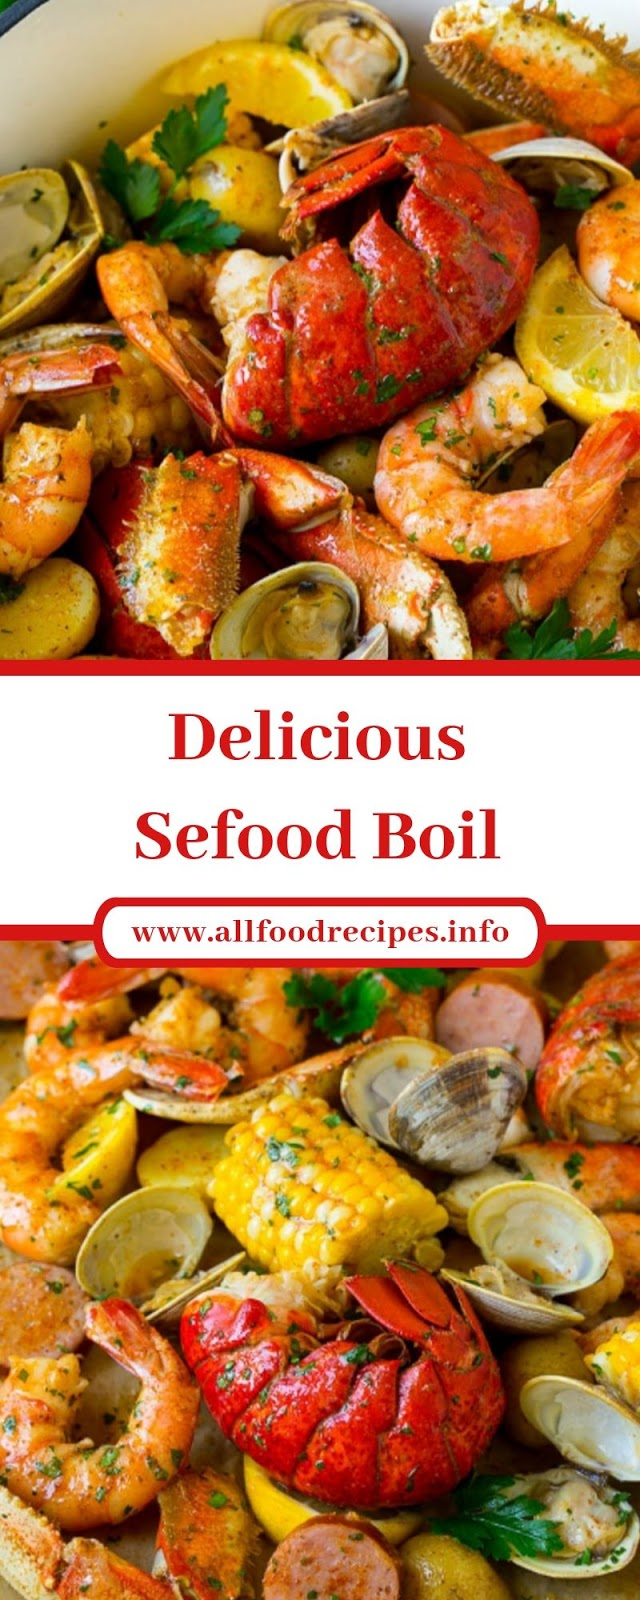 Delicious Sefood Boil